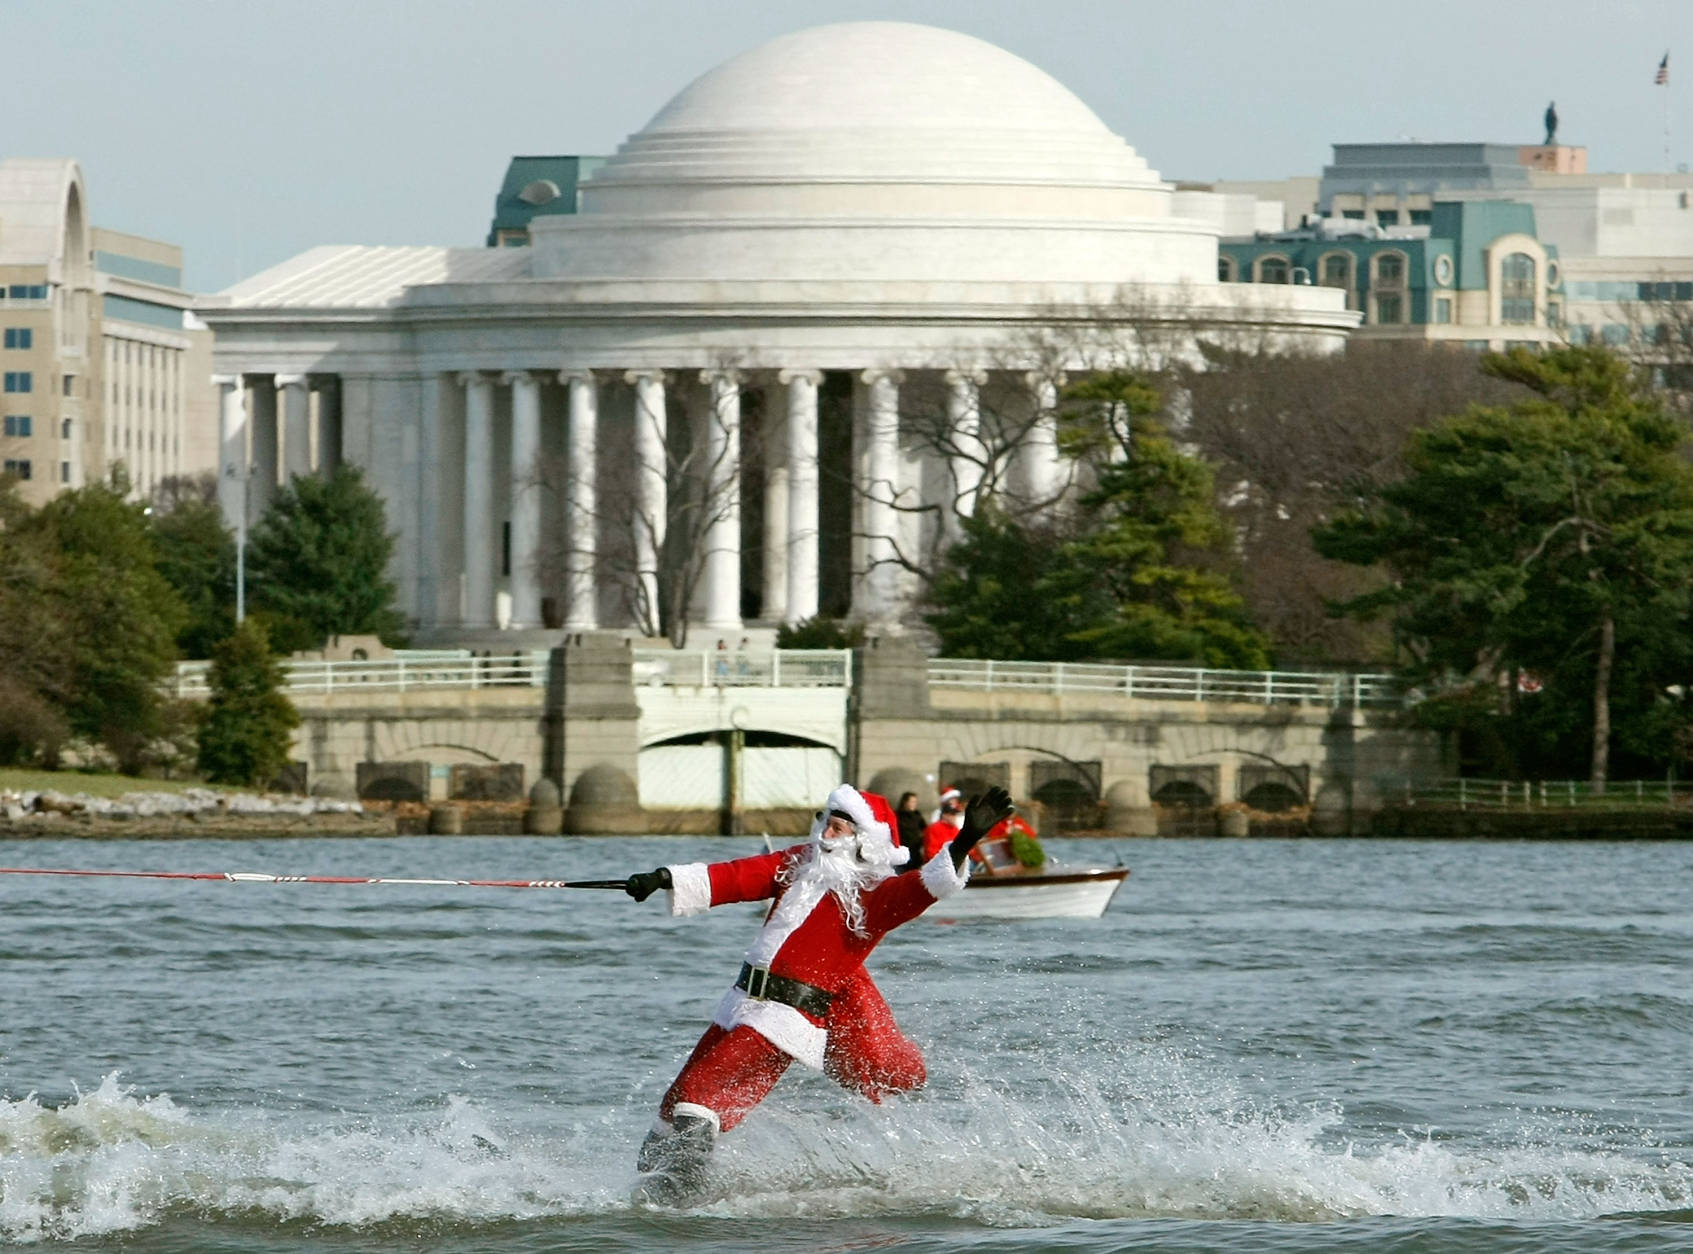 ARLINGTON, VA - DECEMBER 24:  Dressed as Santa Claus, Kerry Nistel water-skis on the waters of the Potomac River December 24, 2007 in Arlington, Virginia. This is the 22nd year Nistel has dressed as Santa and water-skied on Christmas Eve.  (Photo by Mark Wilson/Getty Images)